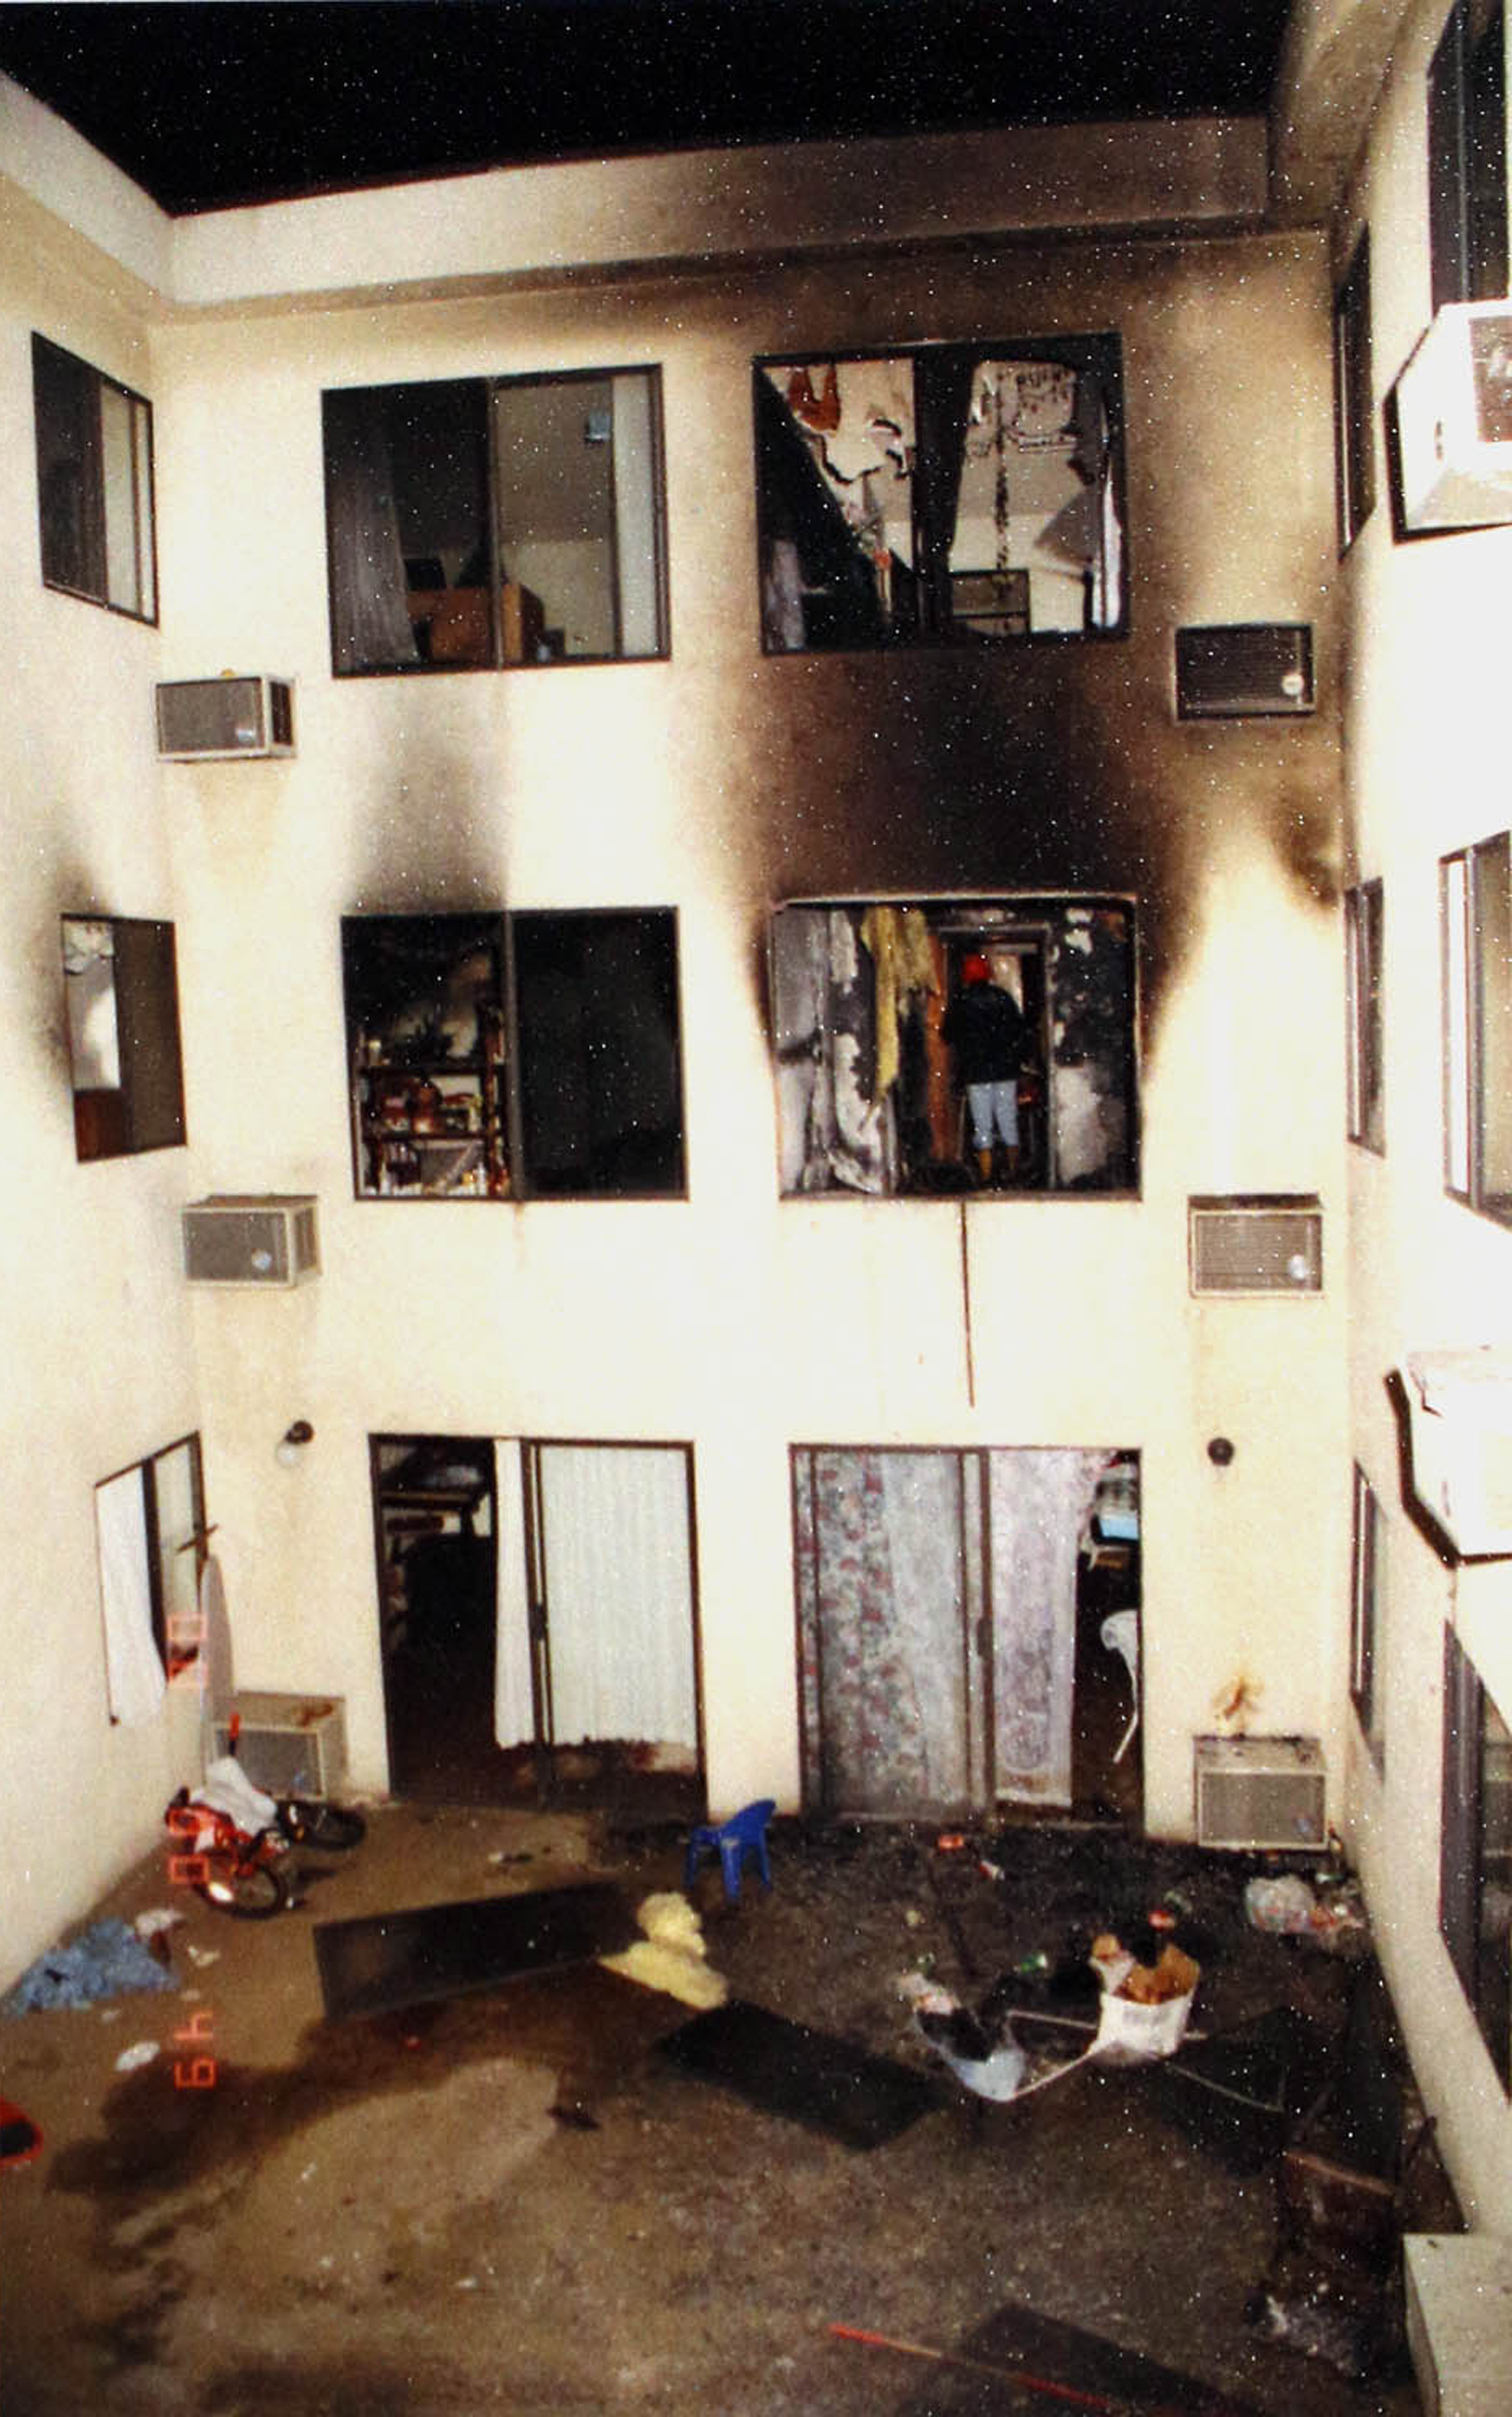 In this May 1993 photo provided by the Los Angeles Police Department, on display at a news conference, investigators attend the scene of a deadly fire that struck an apartment building in the Westlake district of Los Angeles, taking the lives of 12 people including the deaths of late-term fetuses. (Los Angeles Police Department via AP)